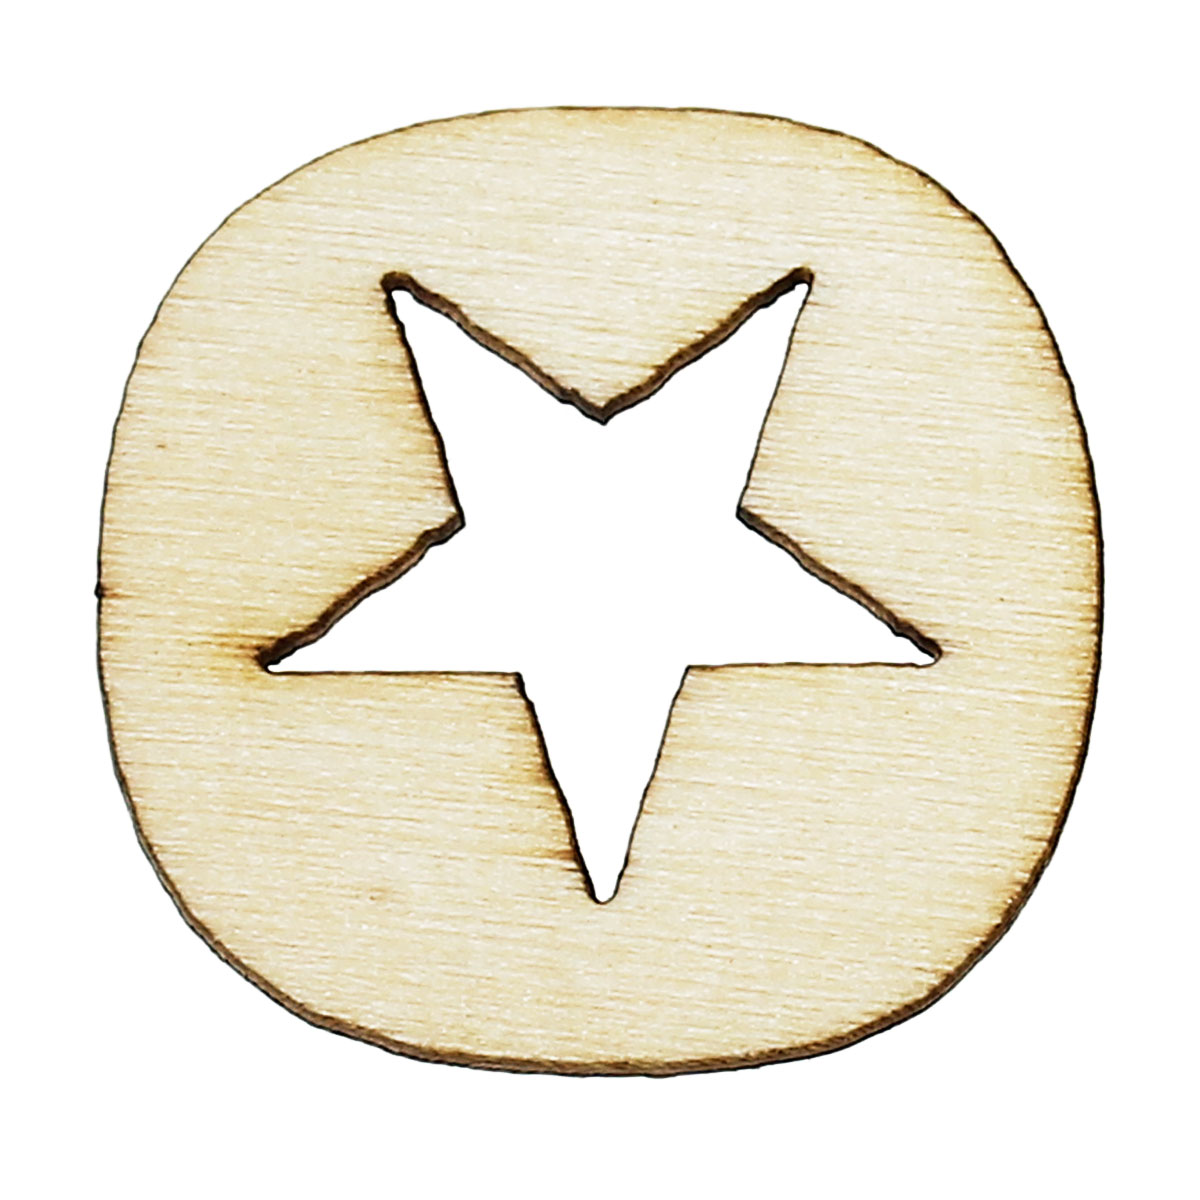 Wood Cabochons Scrapbooking Embellishments Findings Square Natural Star Hollow 25mm(1)x 25mm(1),50 PCs new